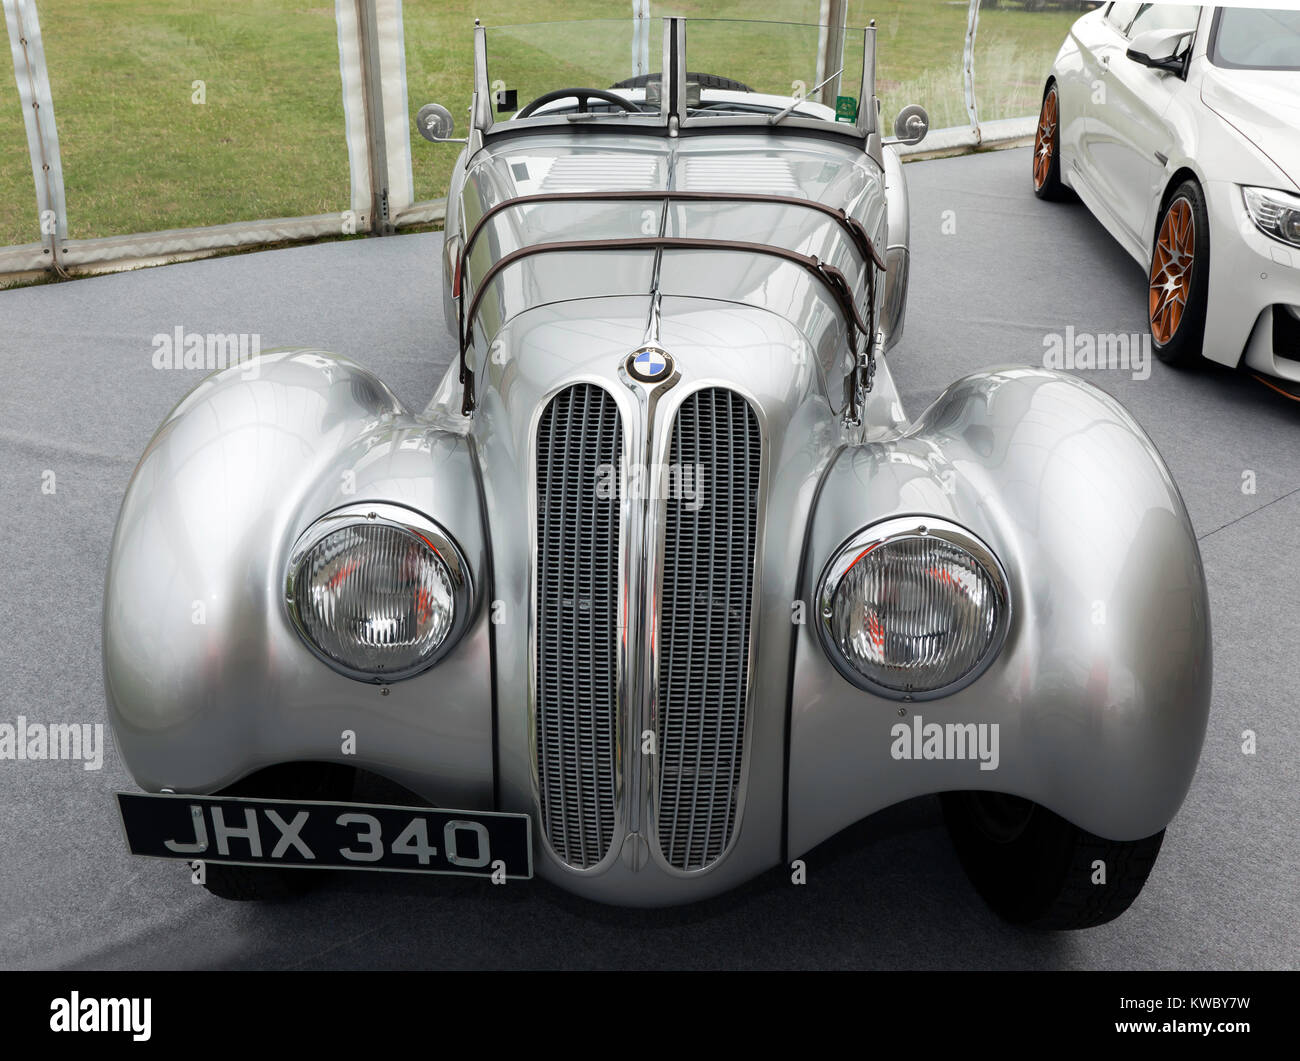 Front view of a 1933, Silver BMW 328  on static display in the BMW Car Club of great britian Ltd zone of the Silverstone - Stock Image